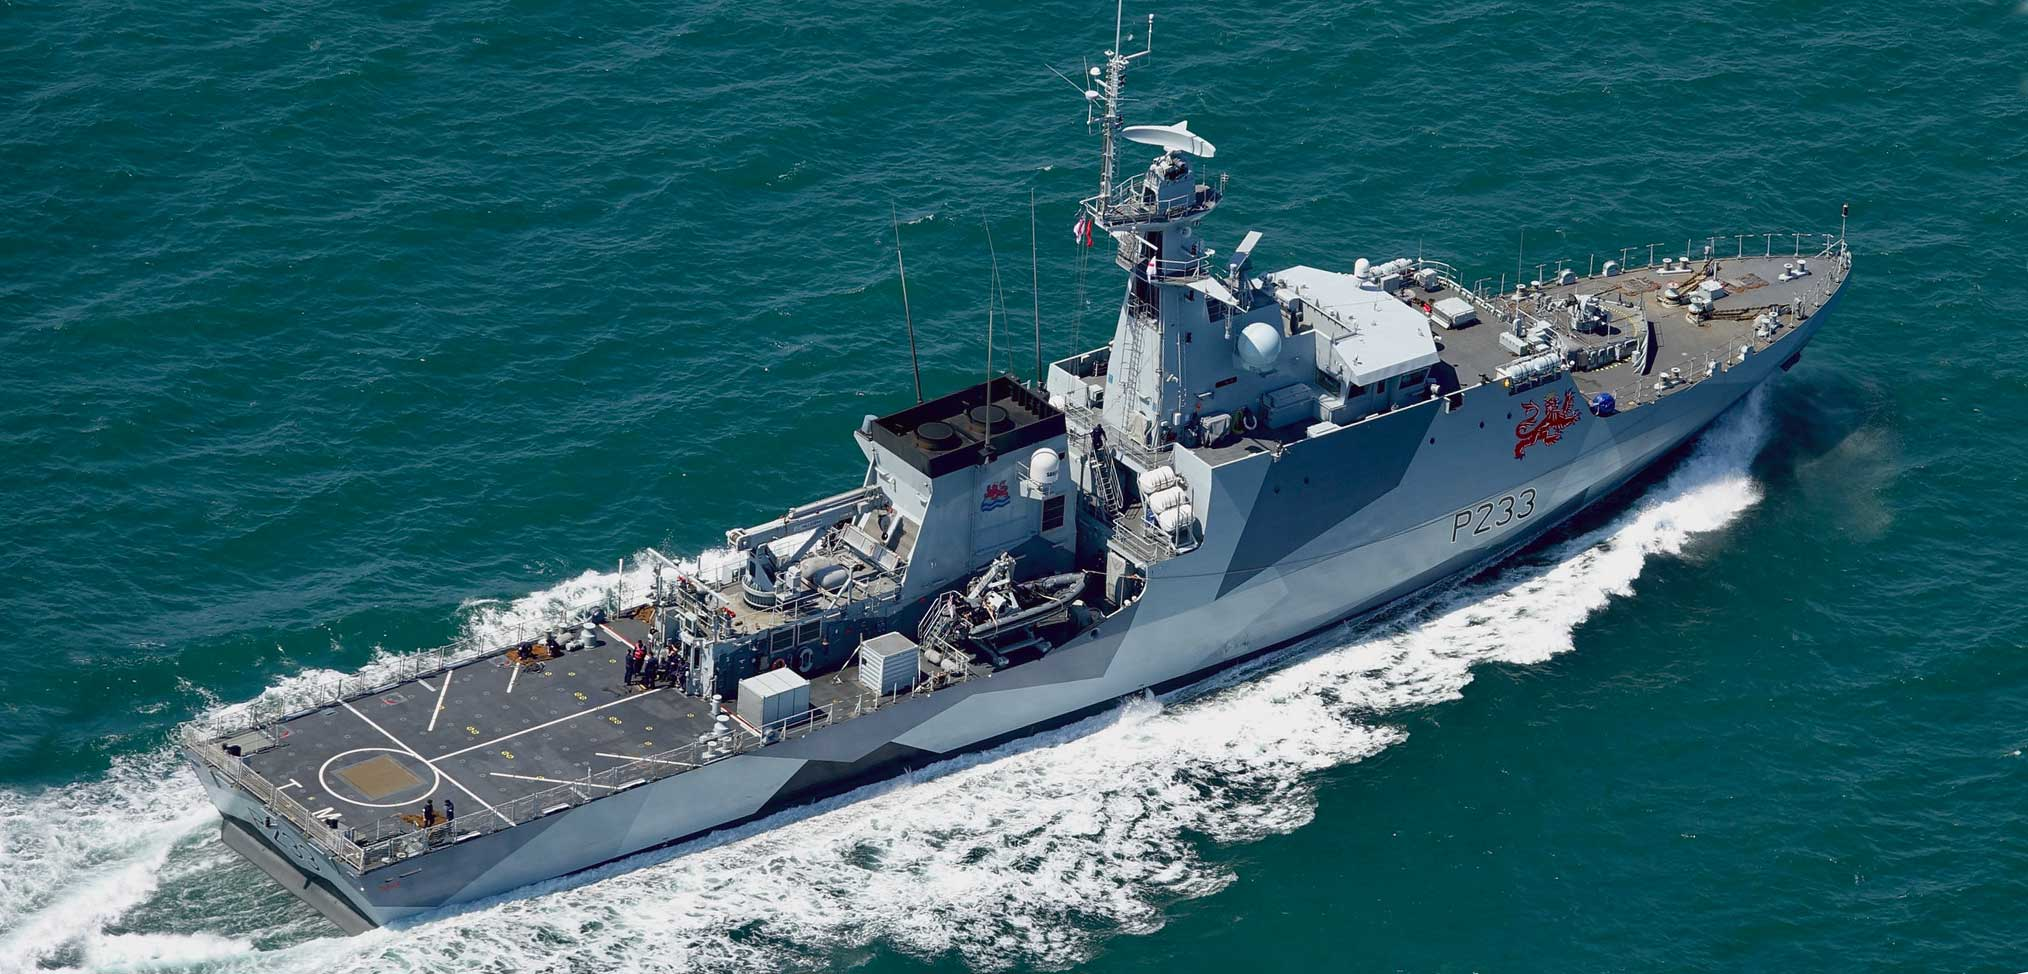 Royal Navy warships sail for permanent basing in the Indo-Pacific region